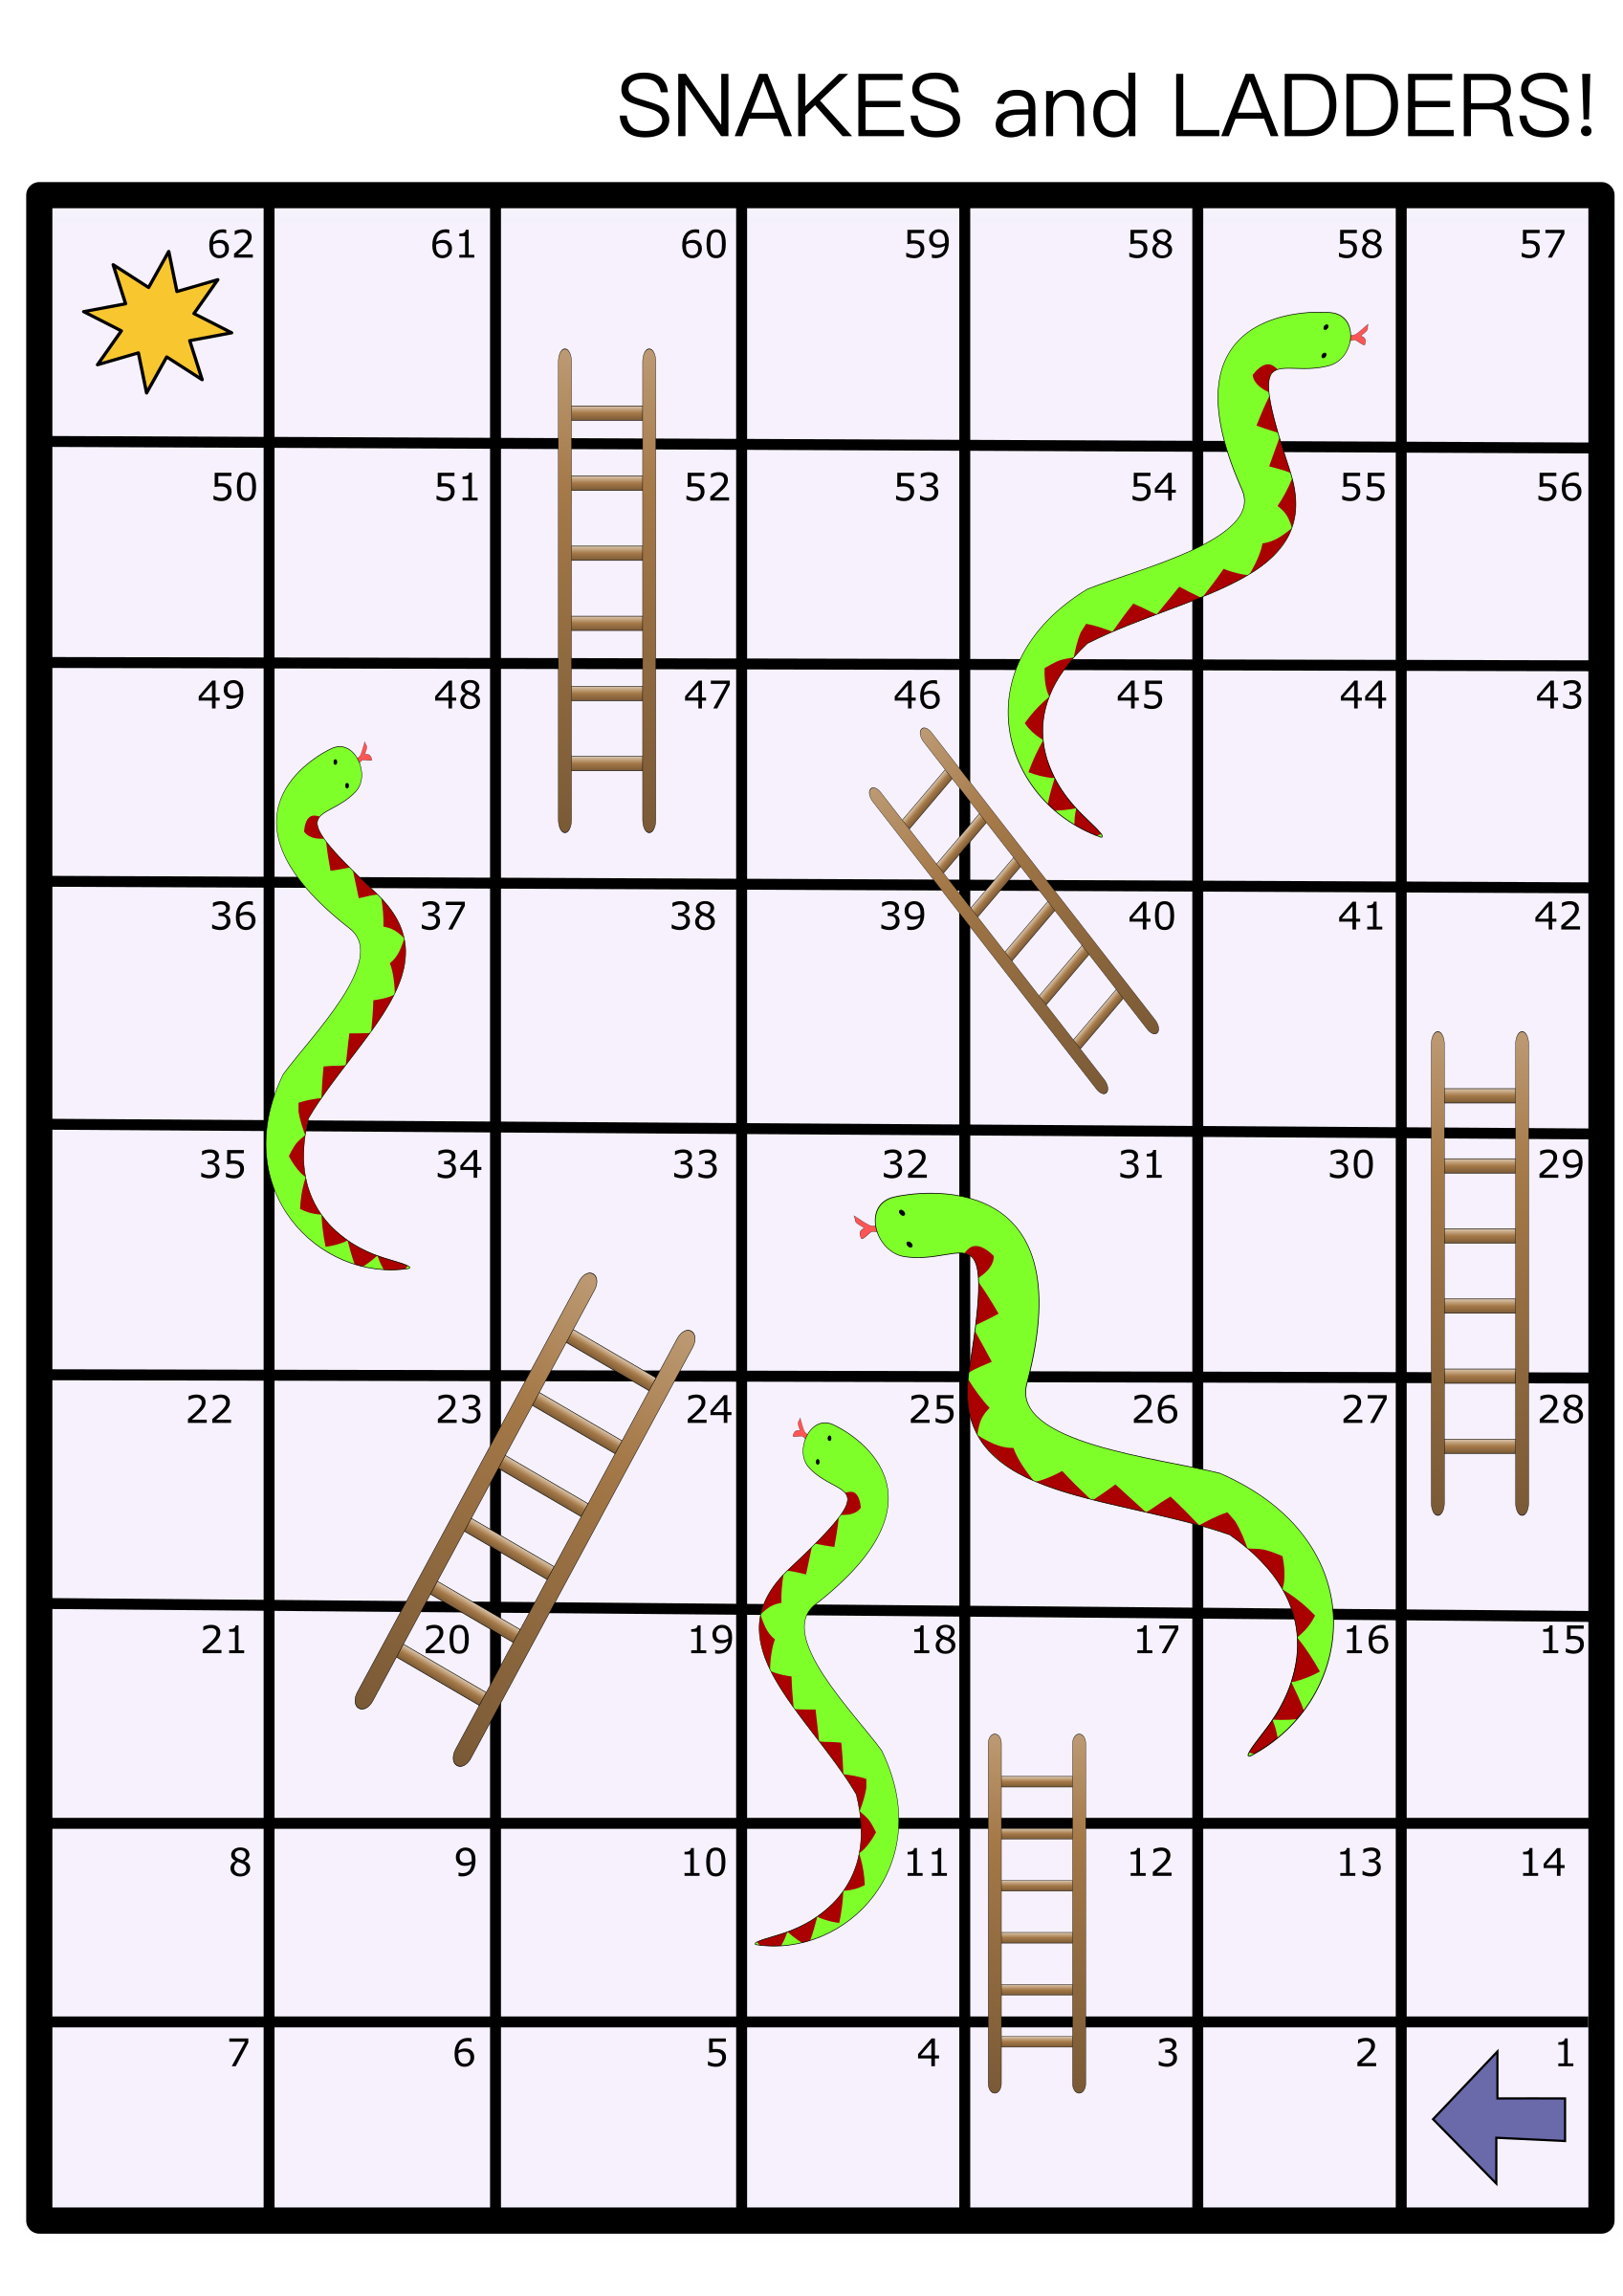 Clipart snakes and ladders board game for Snakes and ladders printable template